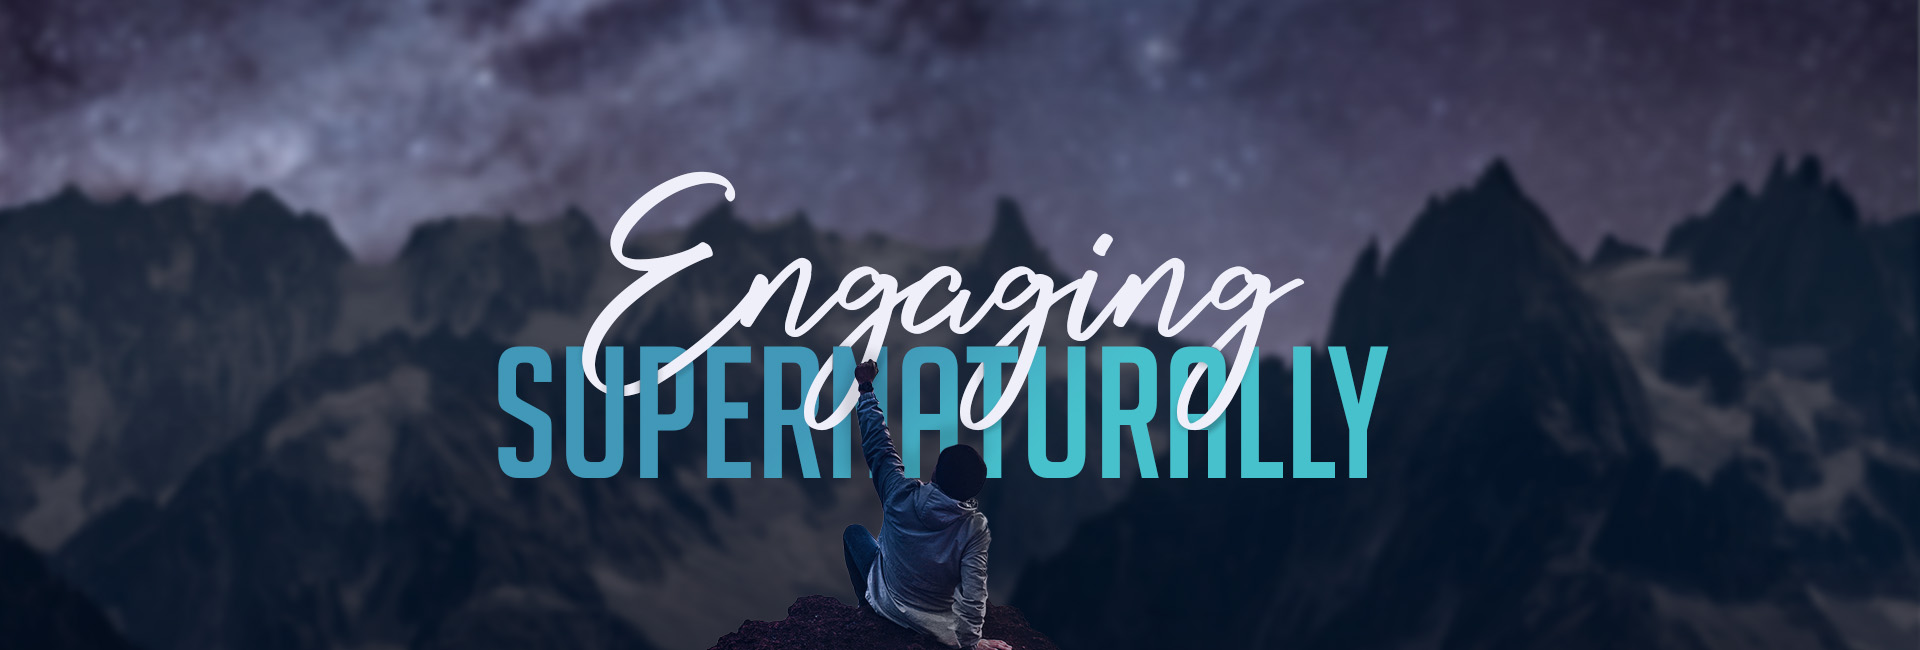 Engaging Supernaturally